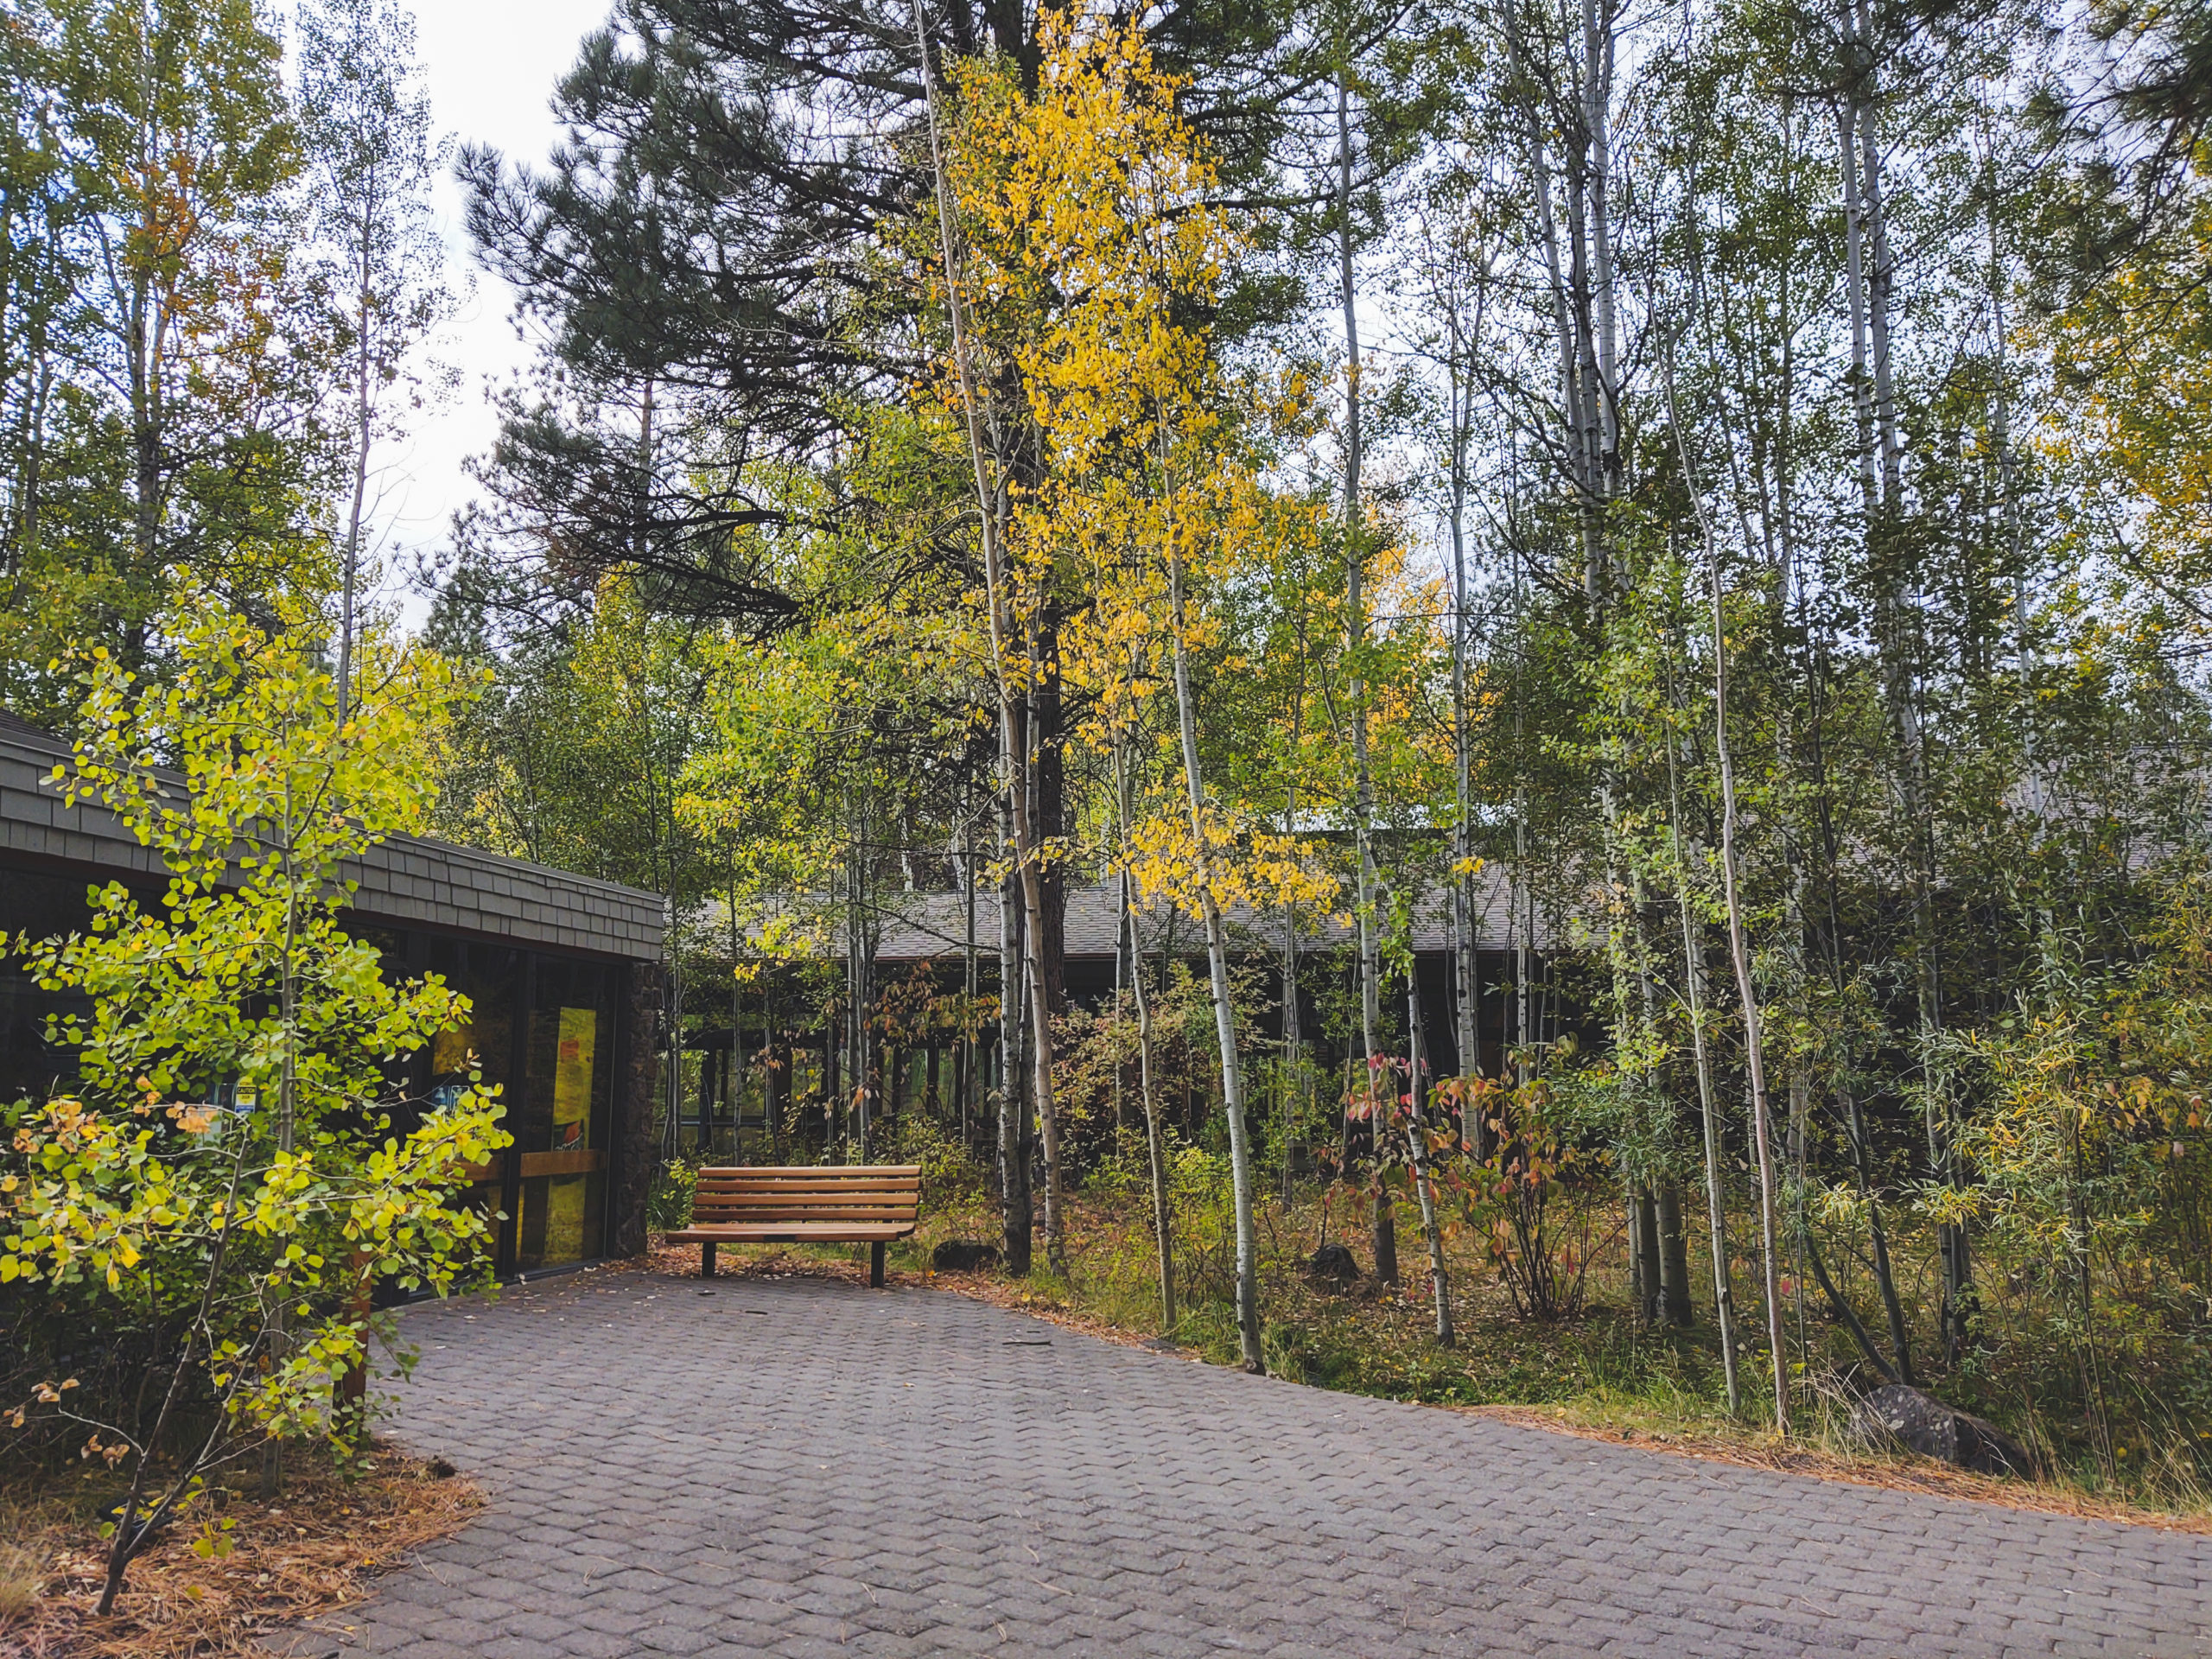 The outside of the High Desert Museum in fall with quaking aspen.